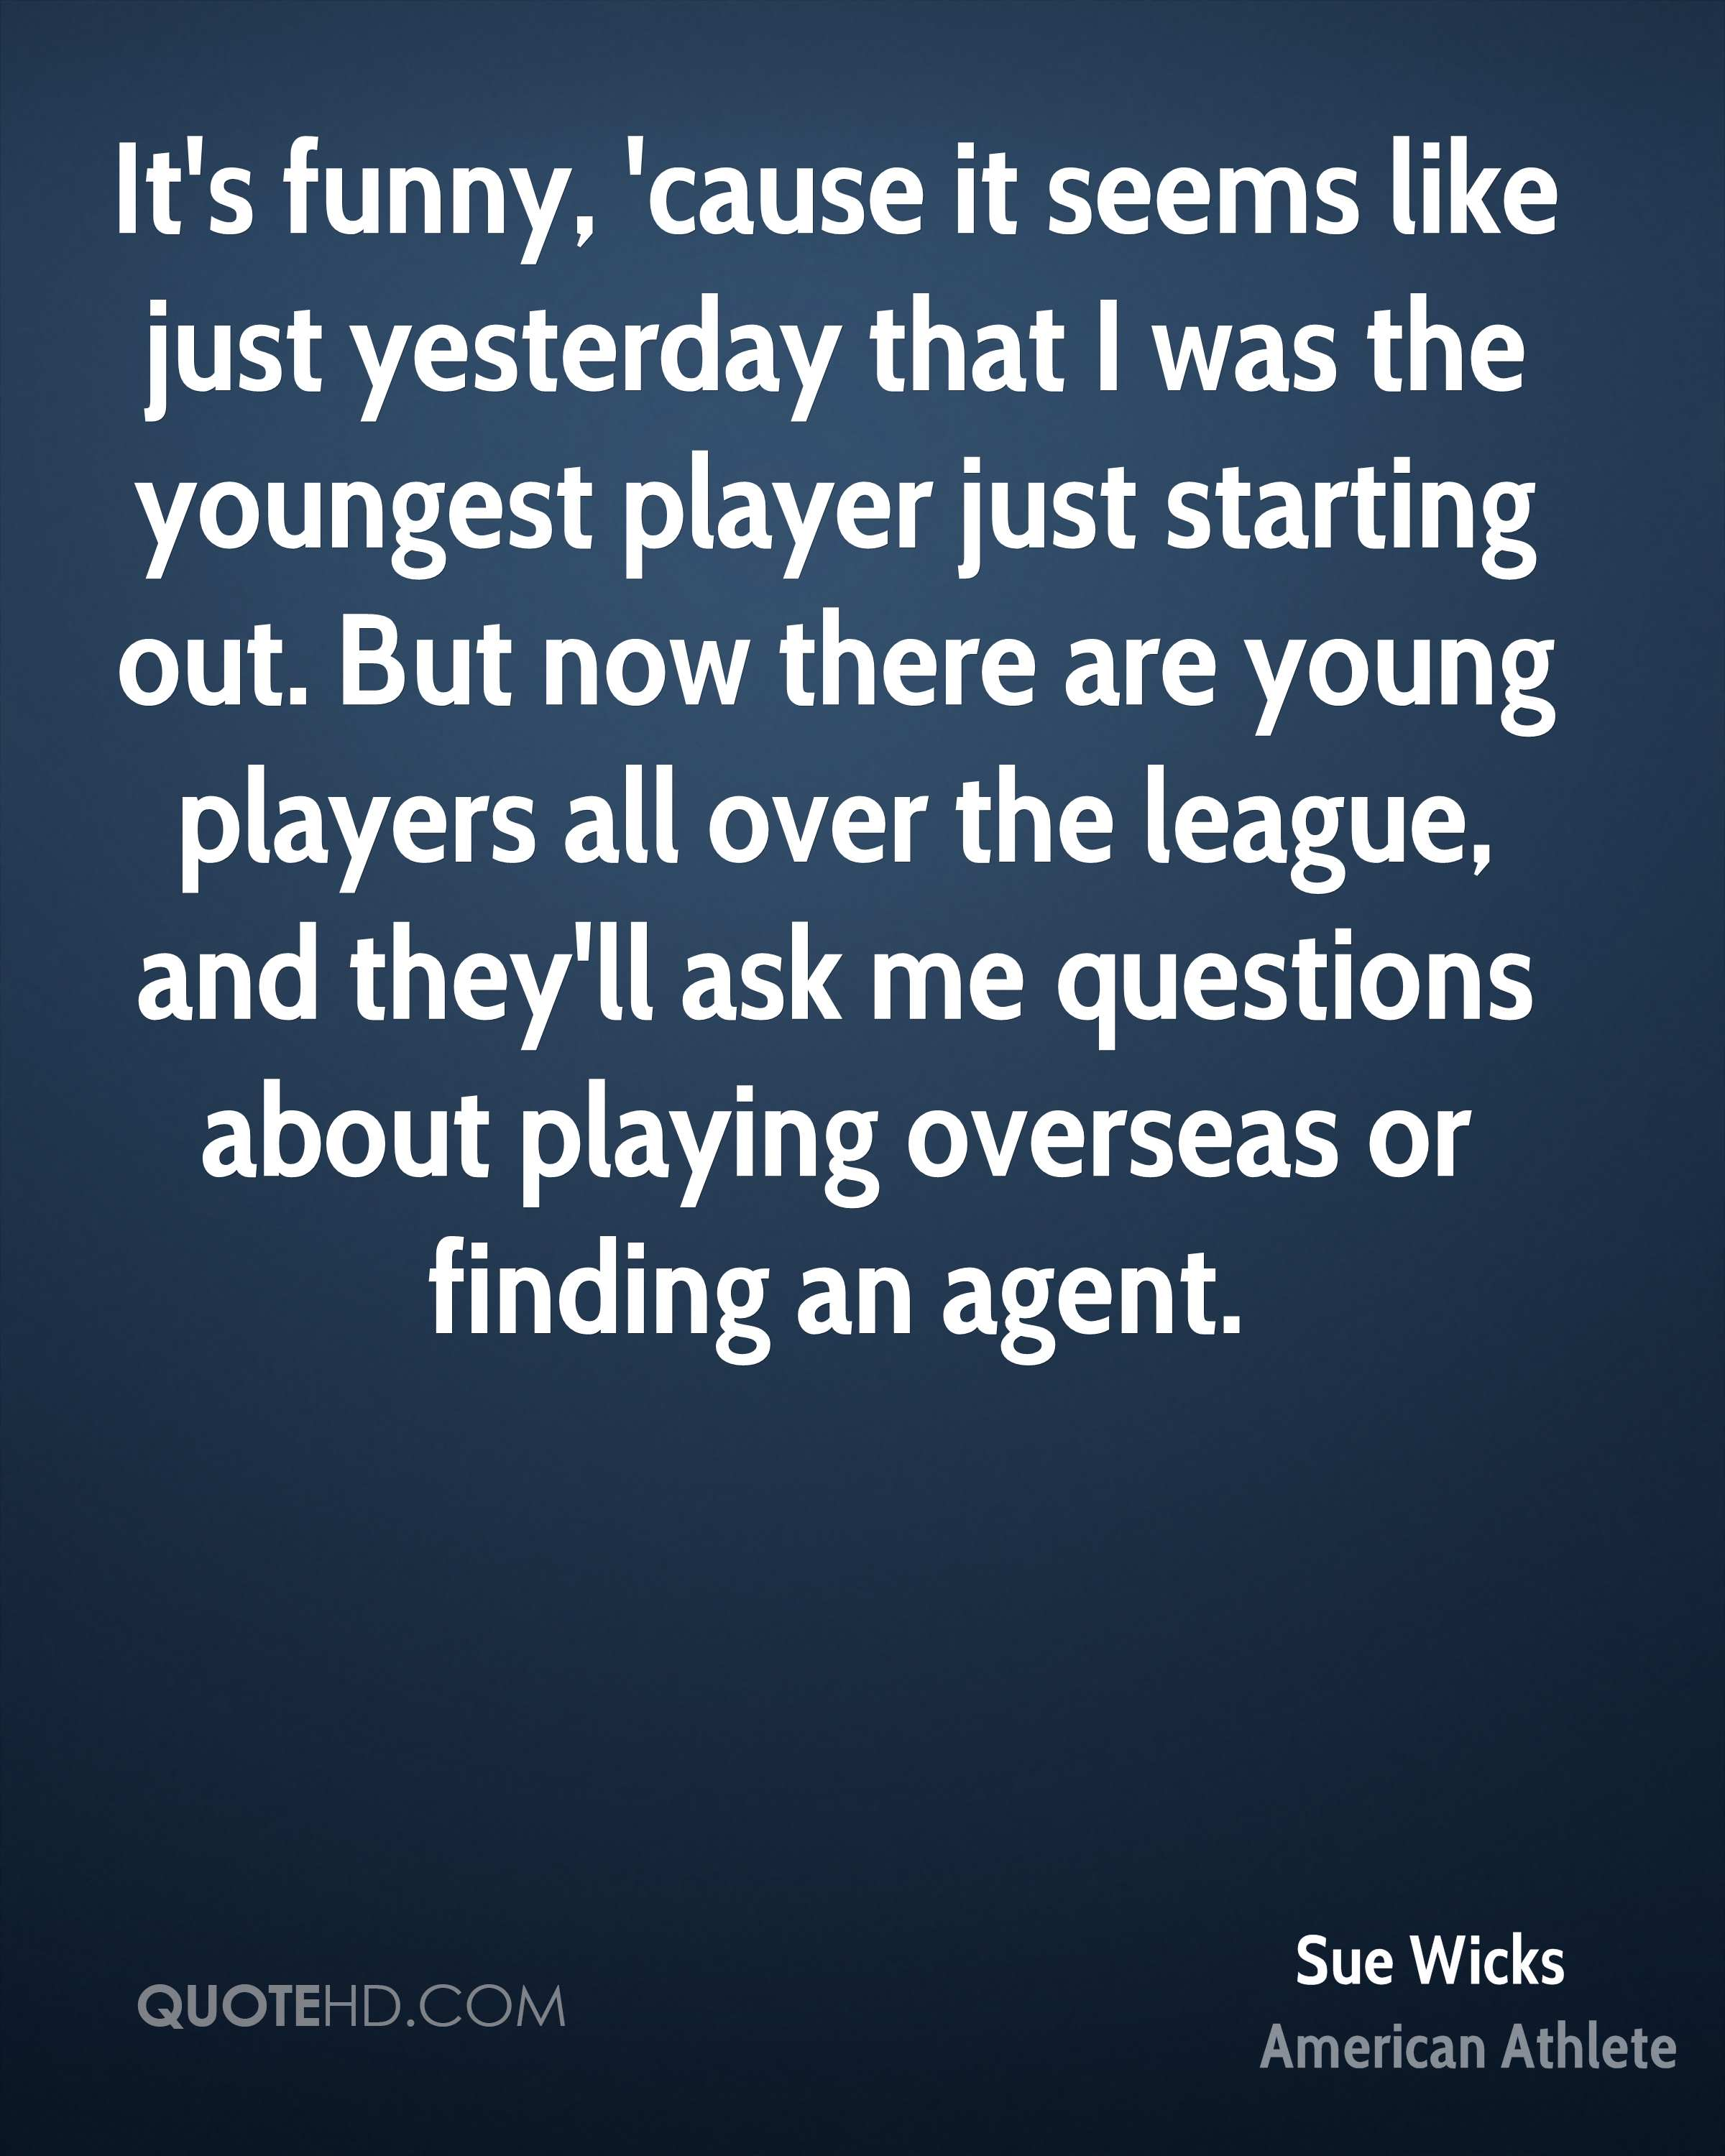 It's funny, 'cause it seems like just yesterday that I was the youngest player just starting out. But now there are young players all over the league, and they'll ask me questions about playing overseas or finding an agent.